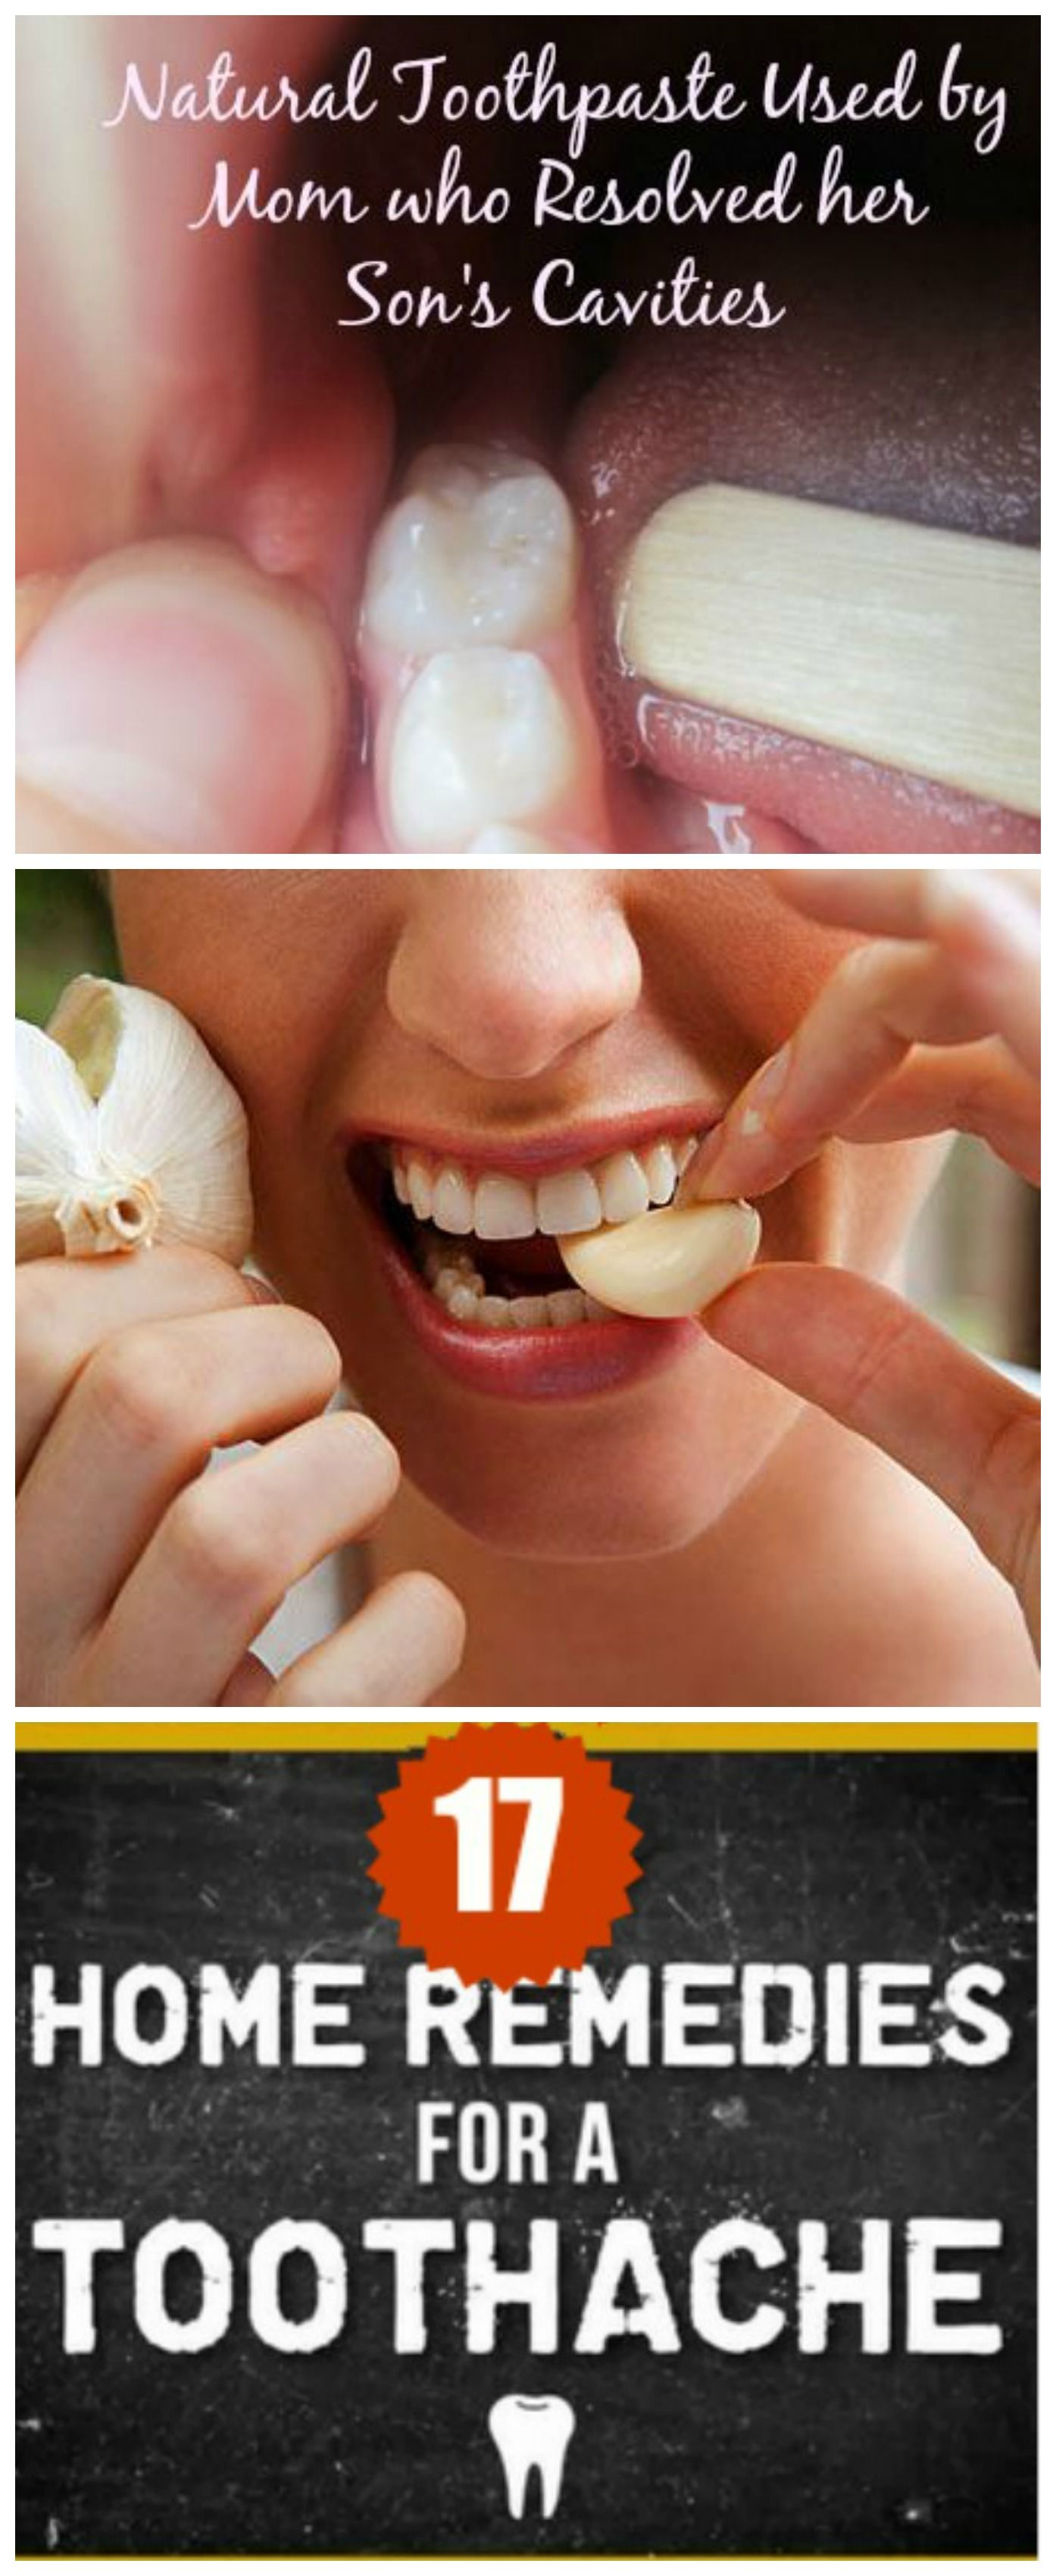 17 Homemade Remedies For Toothache..These Herbs are very effective for fast Pain relief & Safe.. plus a natural toothpaste for healing your cavity too.